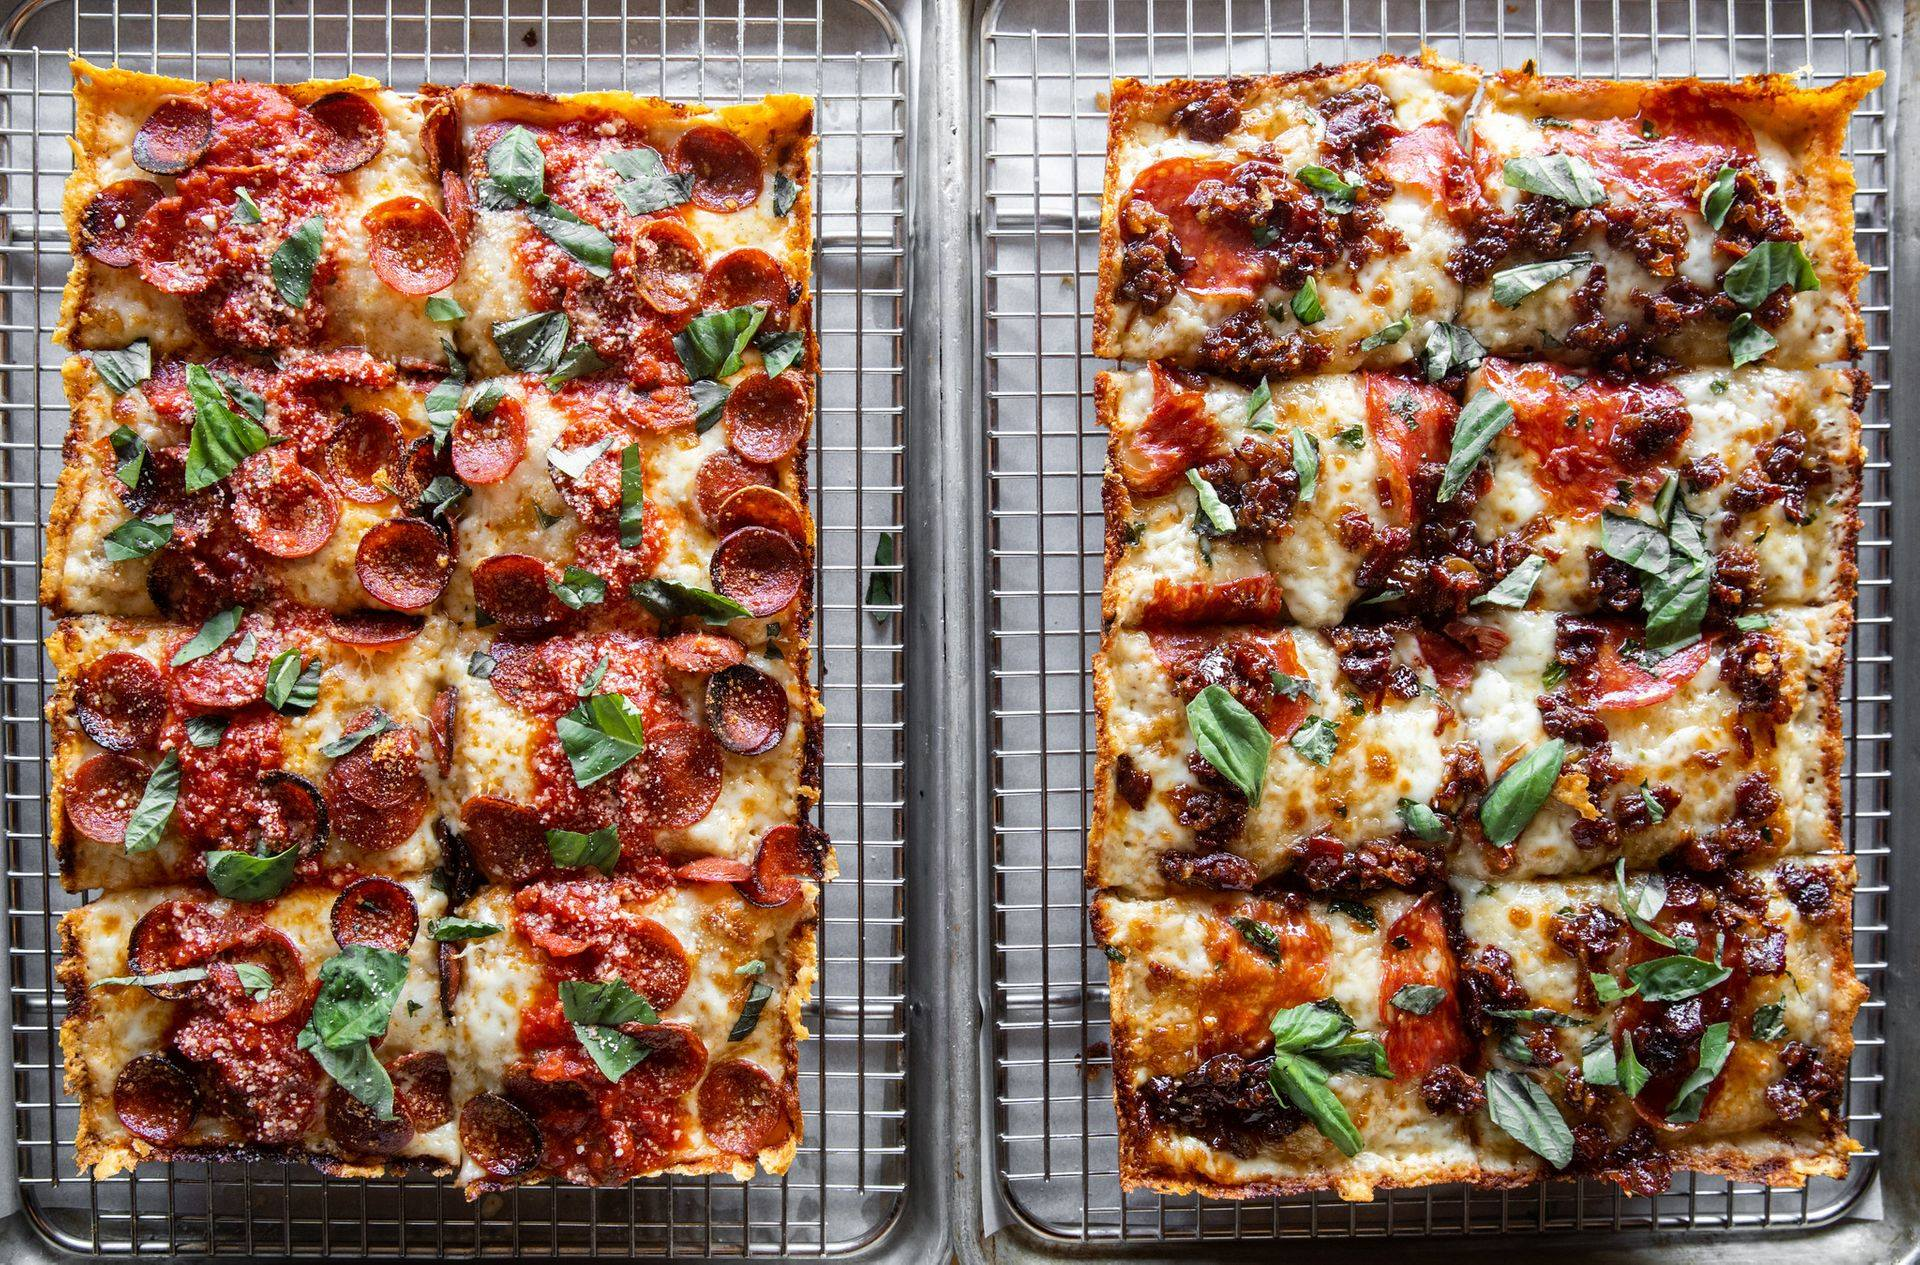 Two Detroit-style pizzas cooling on wire racks side by side